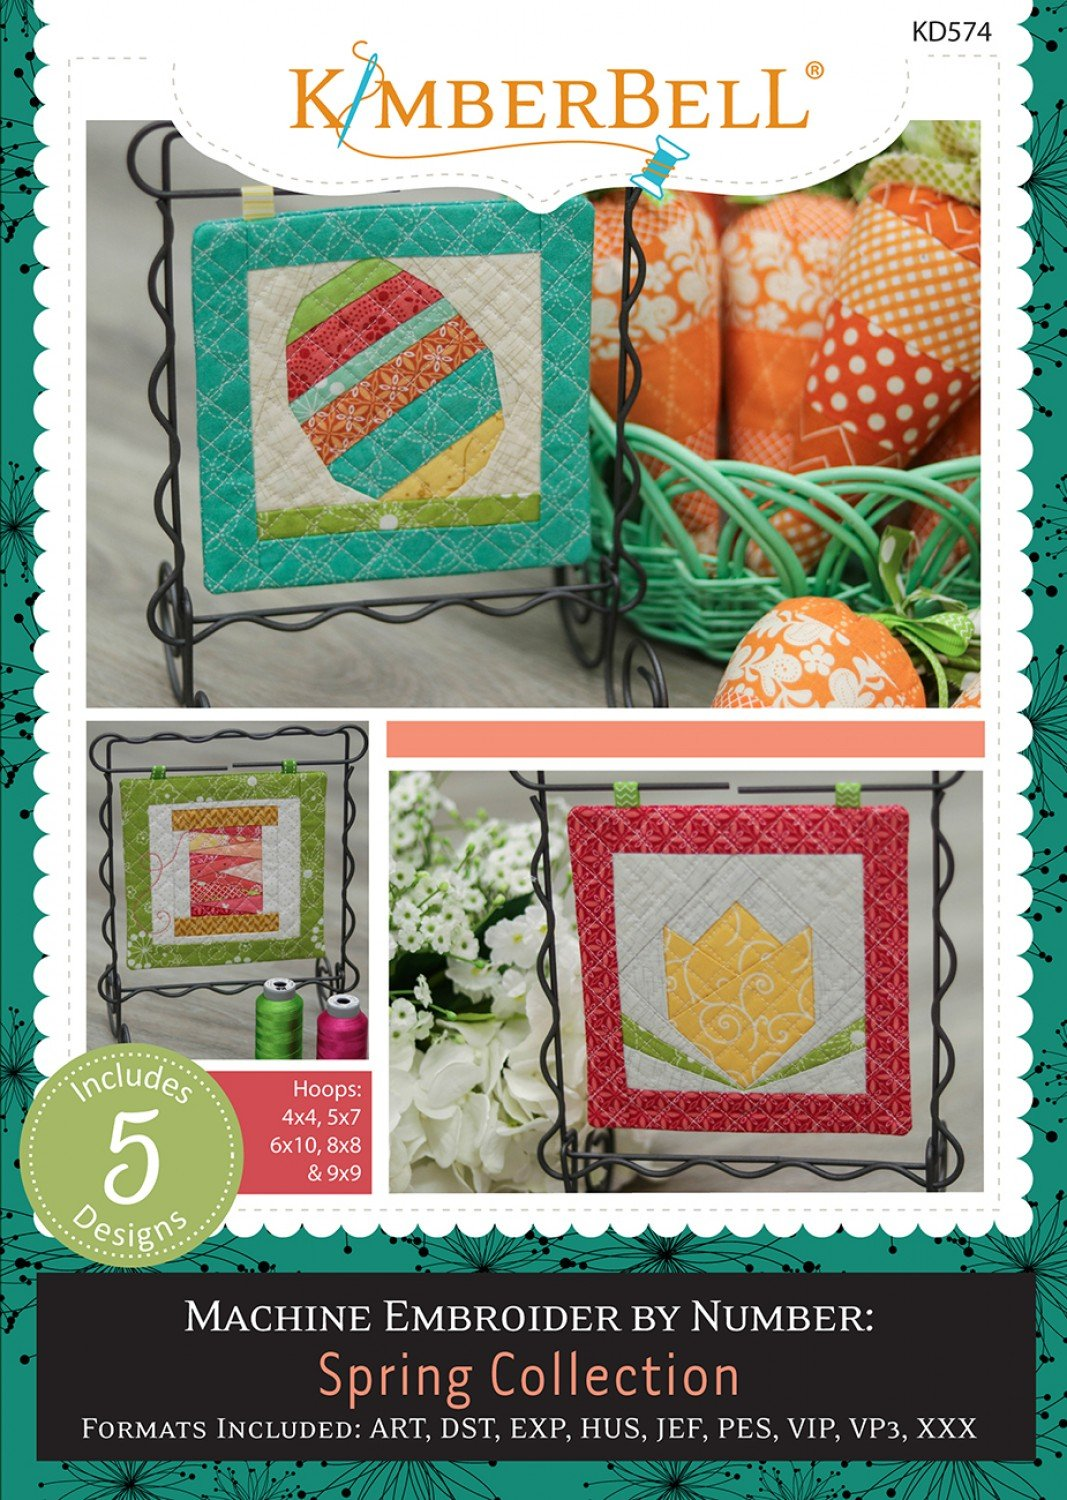 Spring Collection Machine Embroidery by Number Patterns CD